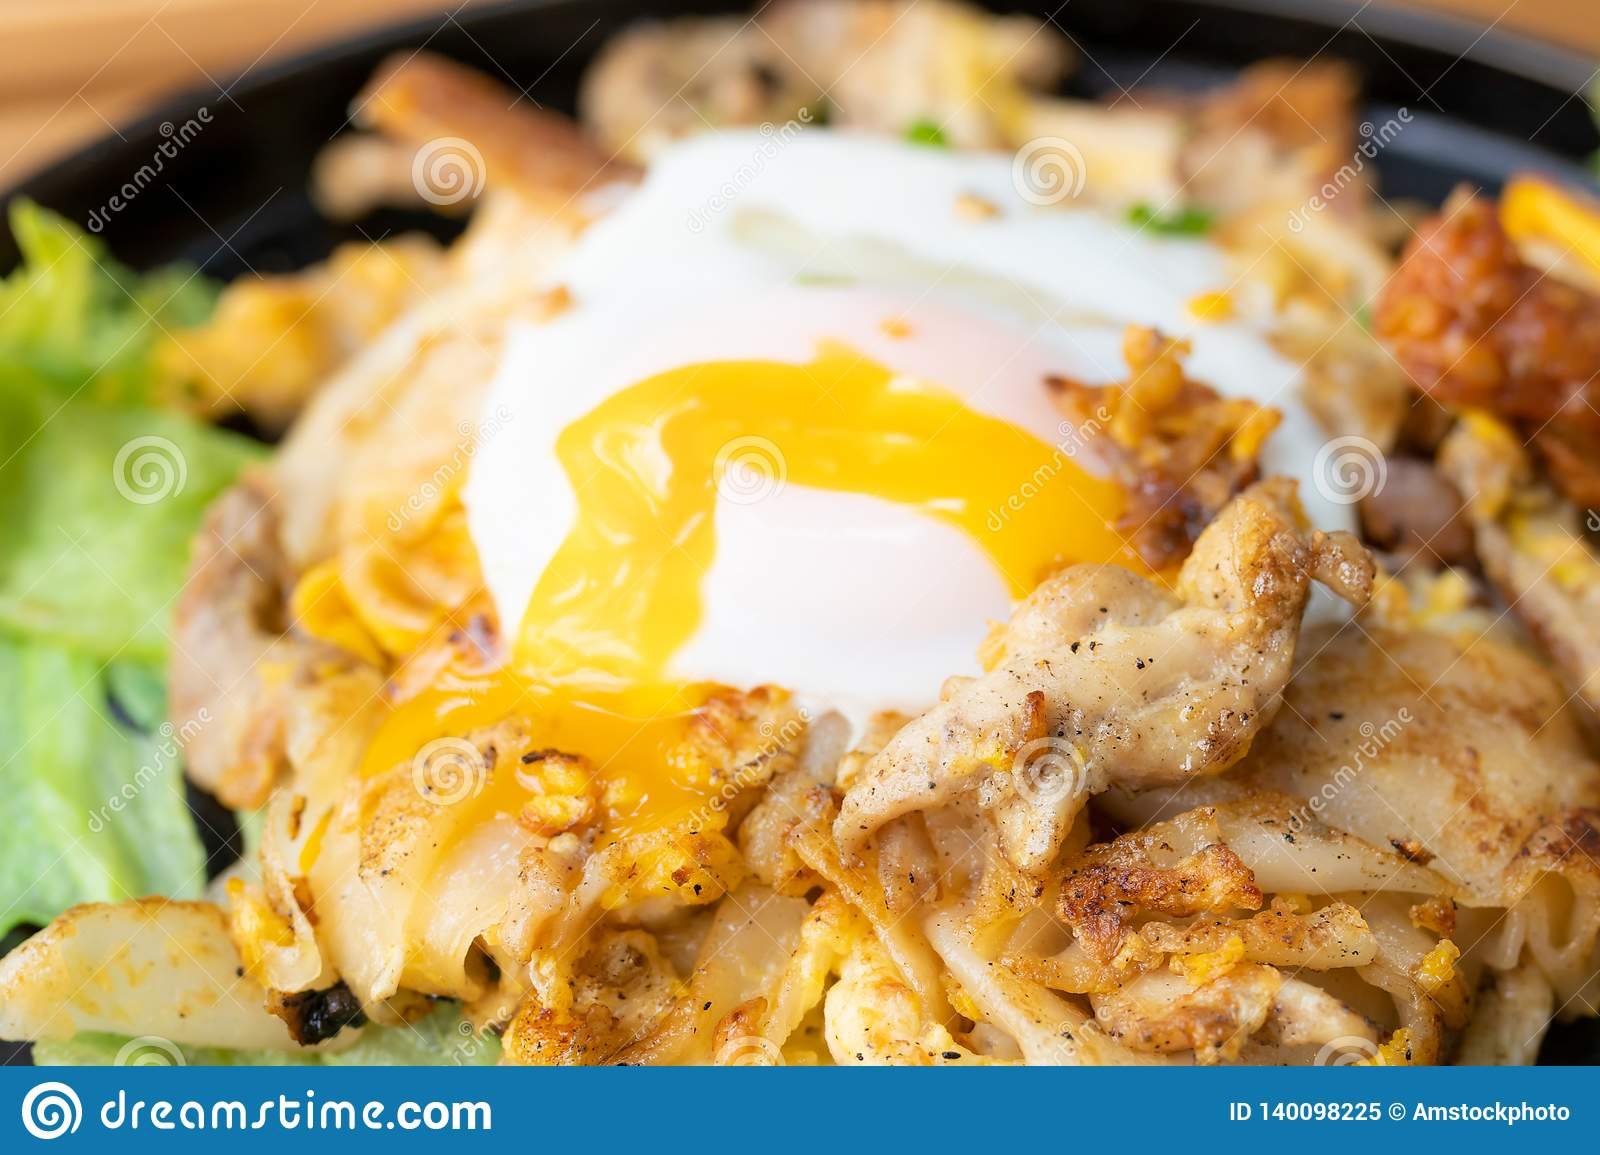 Stir fried noodles with chicken and fried egg Thai food